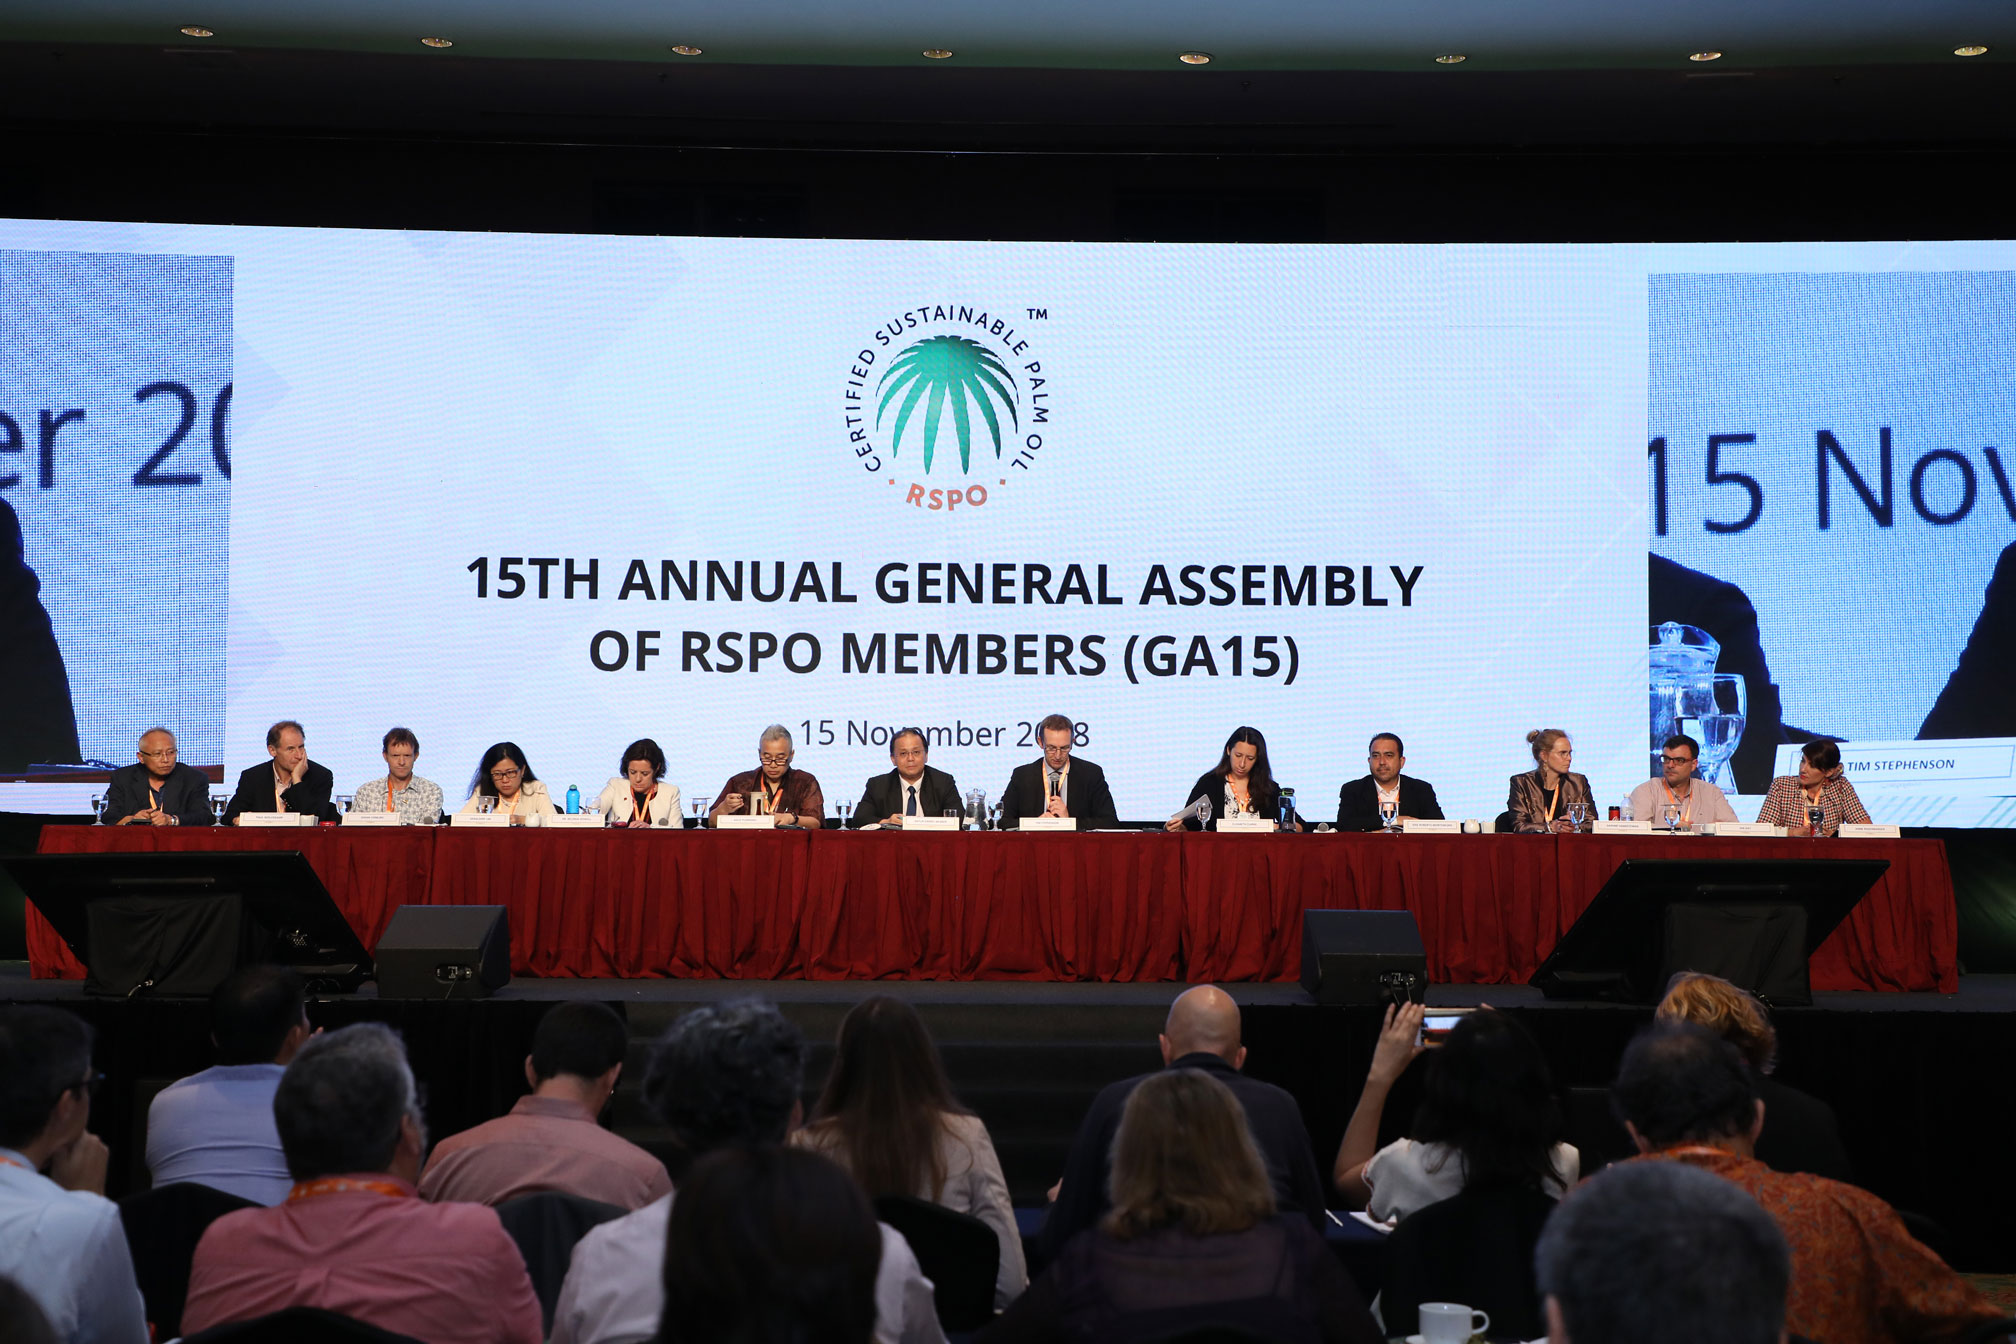 RSPO Agree in New Palm Oil Standard to Halt Deforestation and Improve Human Rights Protection